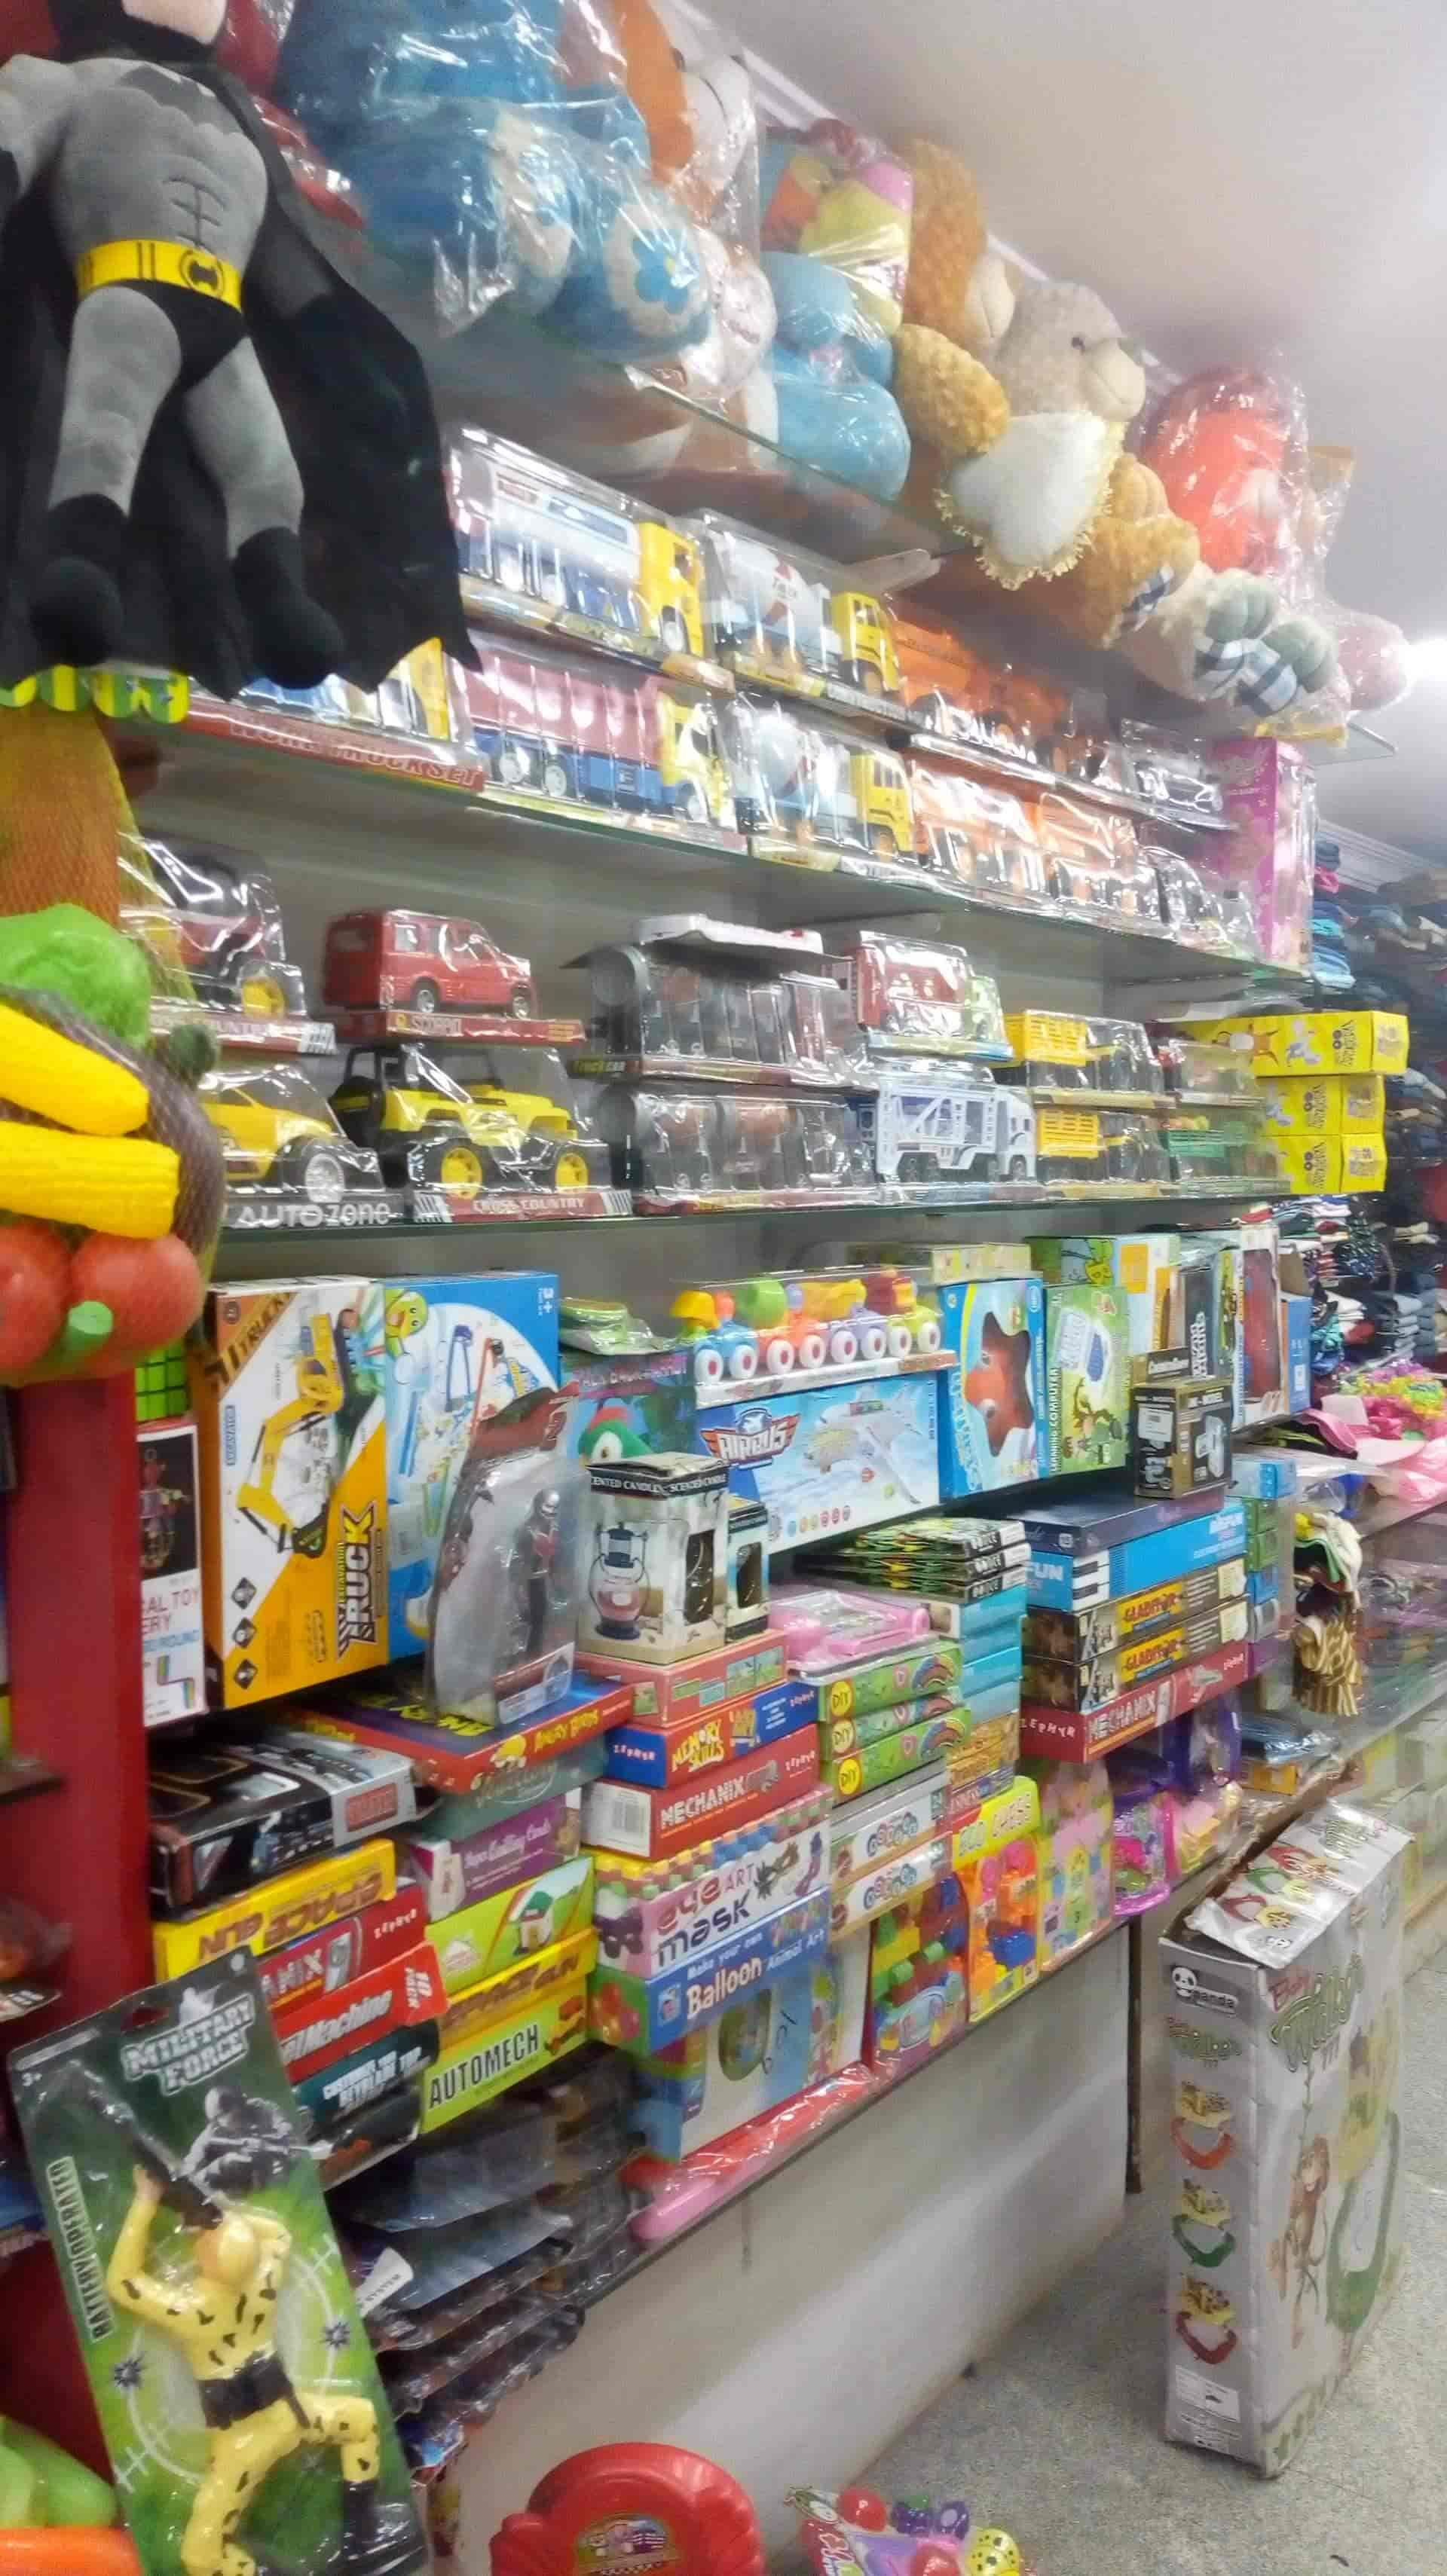 904f238552 Biba Ladies And Kids Toys Clothes Store, Ramamurthy Nagar - Readymade  Garment Retailers in Bangalore - Justdial